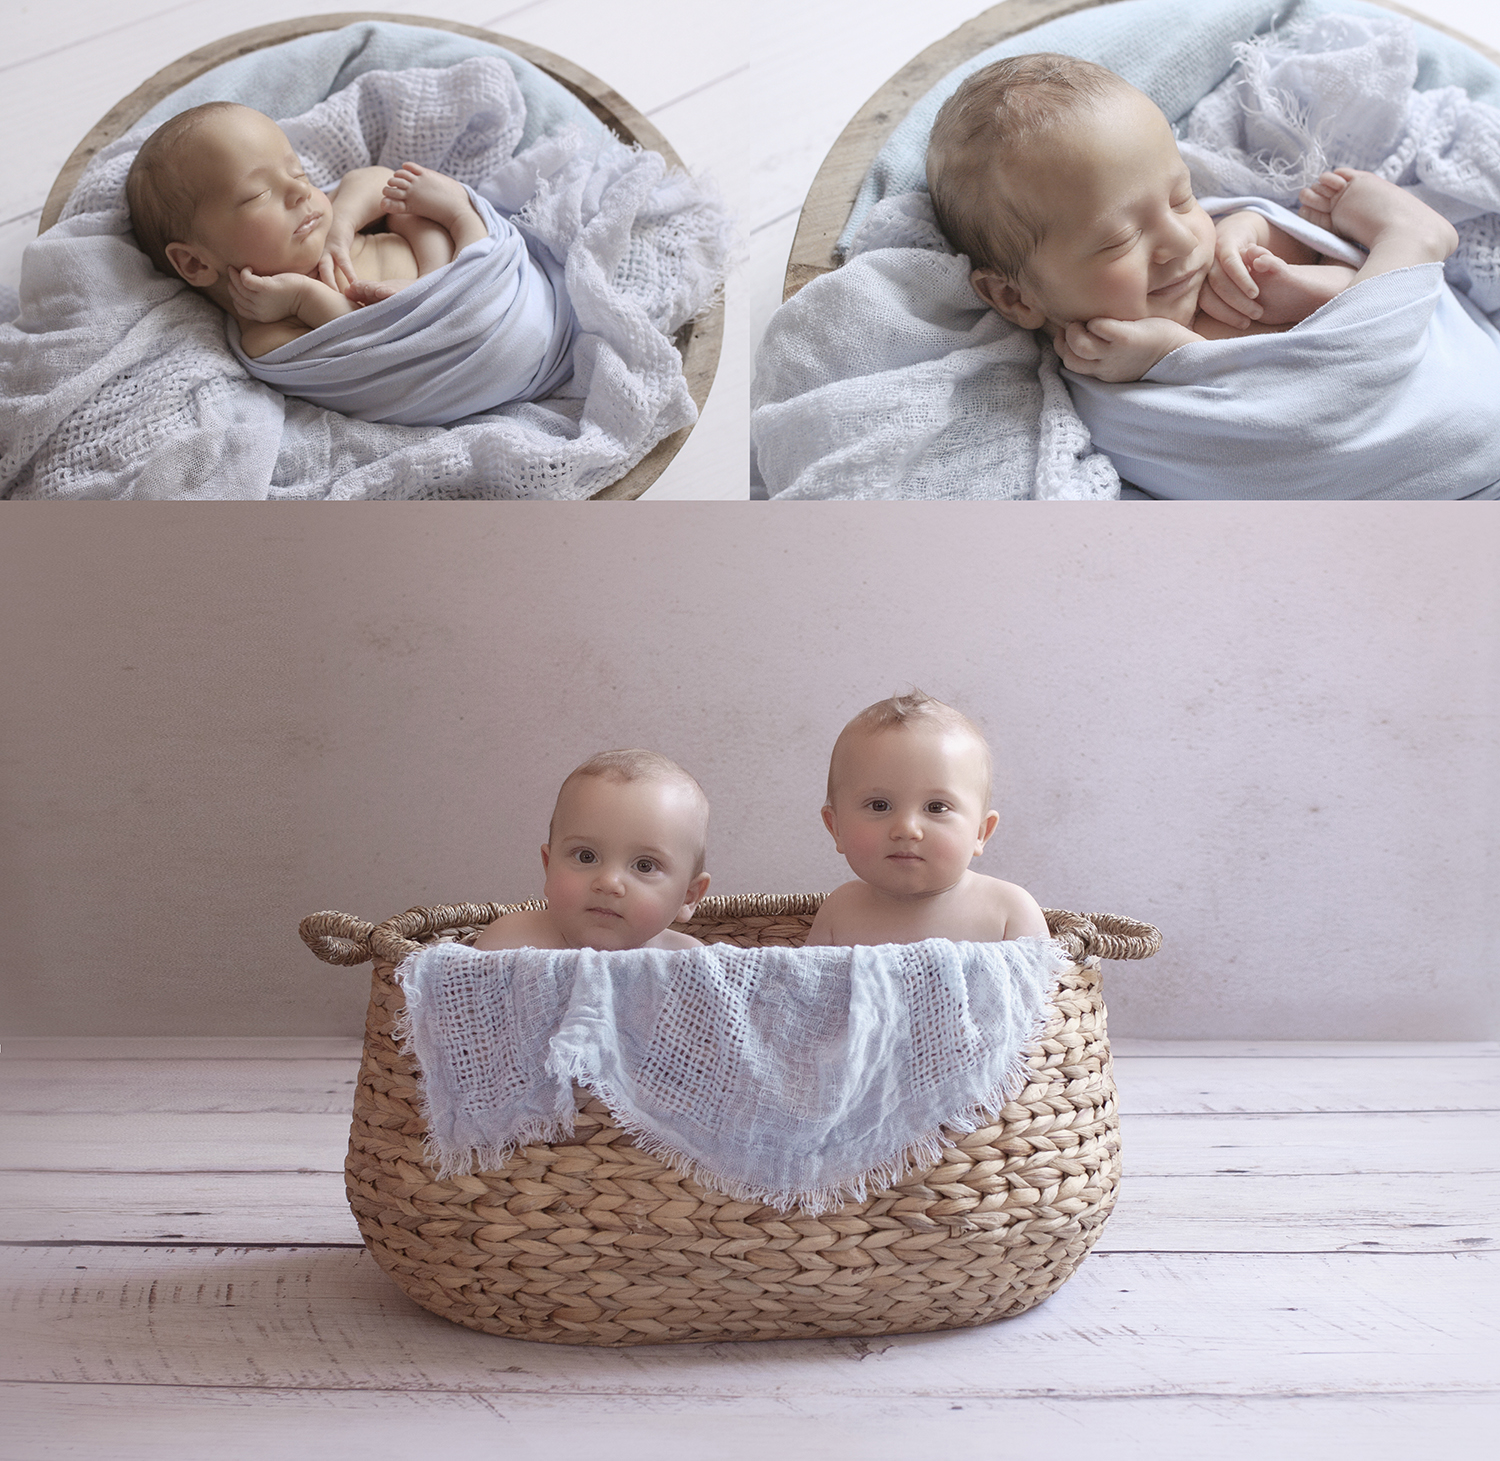 Newborn twin boys wrapped in baby blue blanket in wooden bowl on white wooden floor with blue blanket and same set up with 8 month old boys